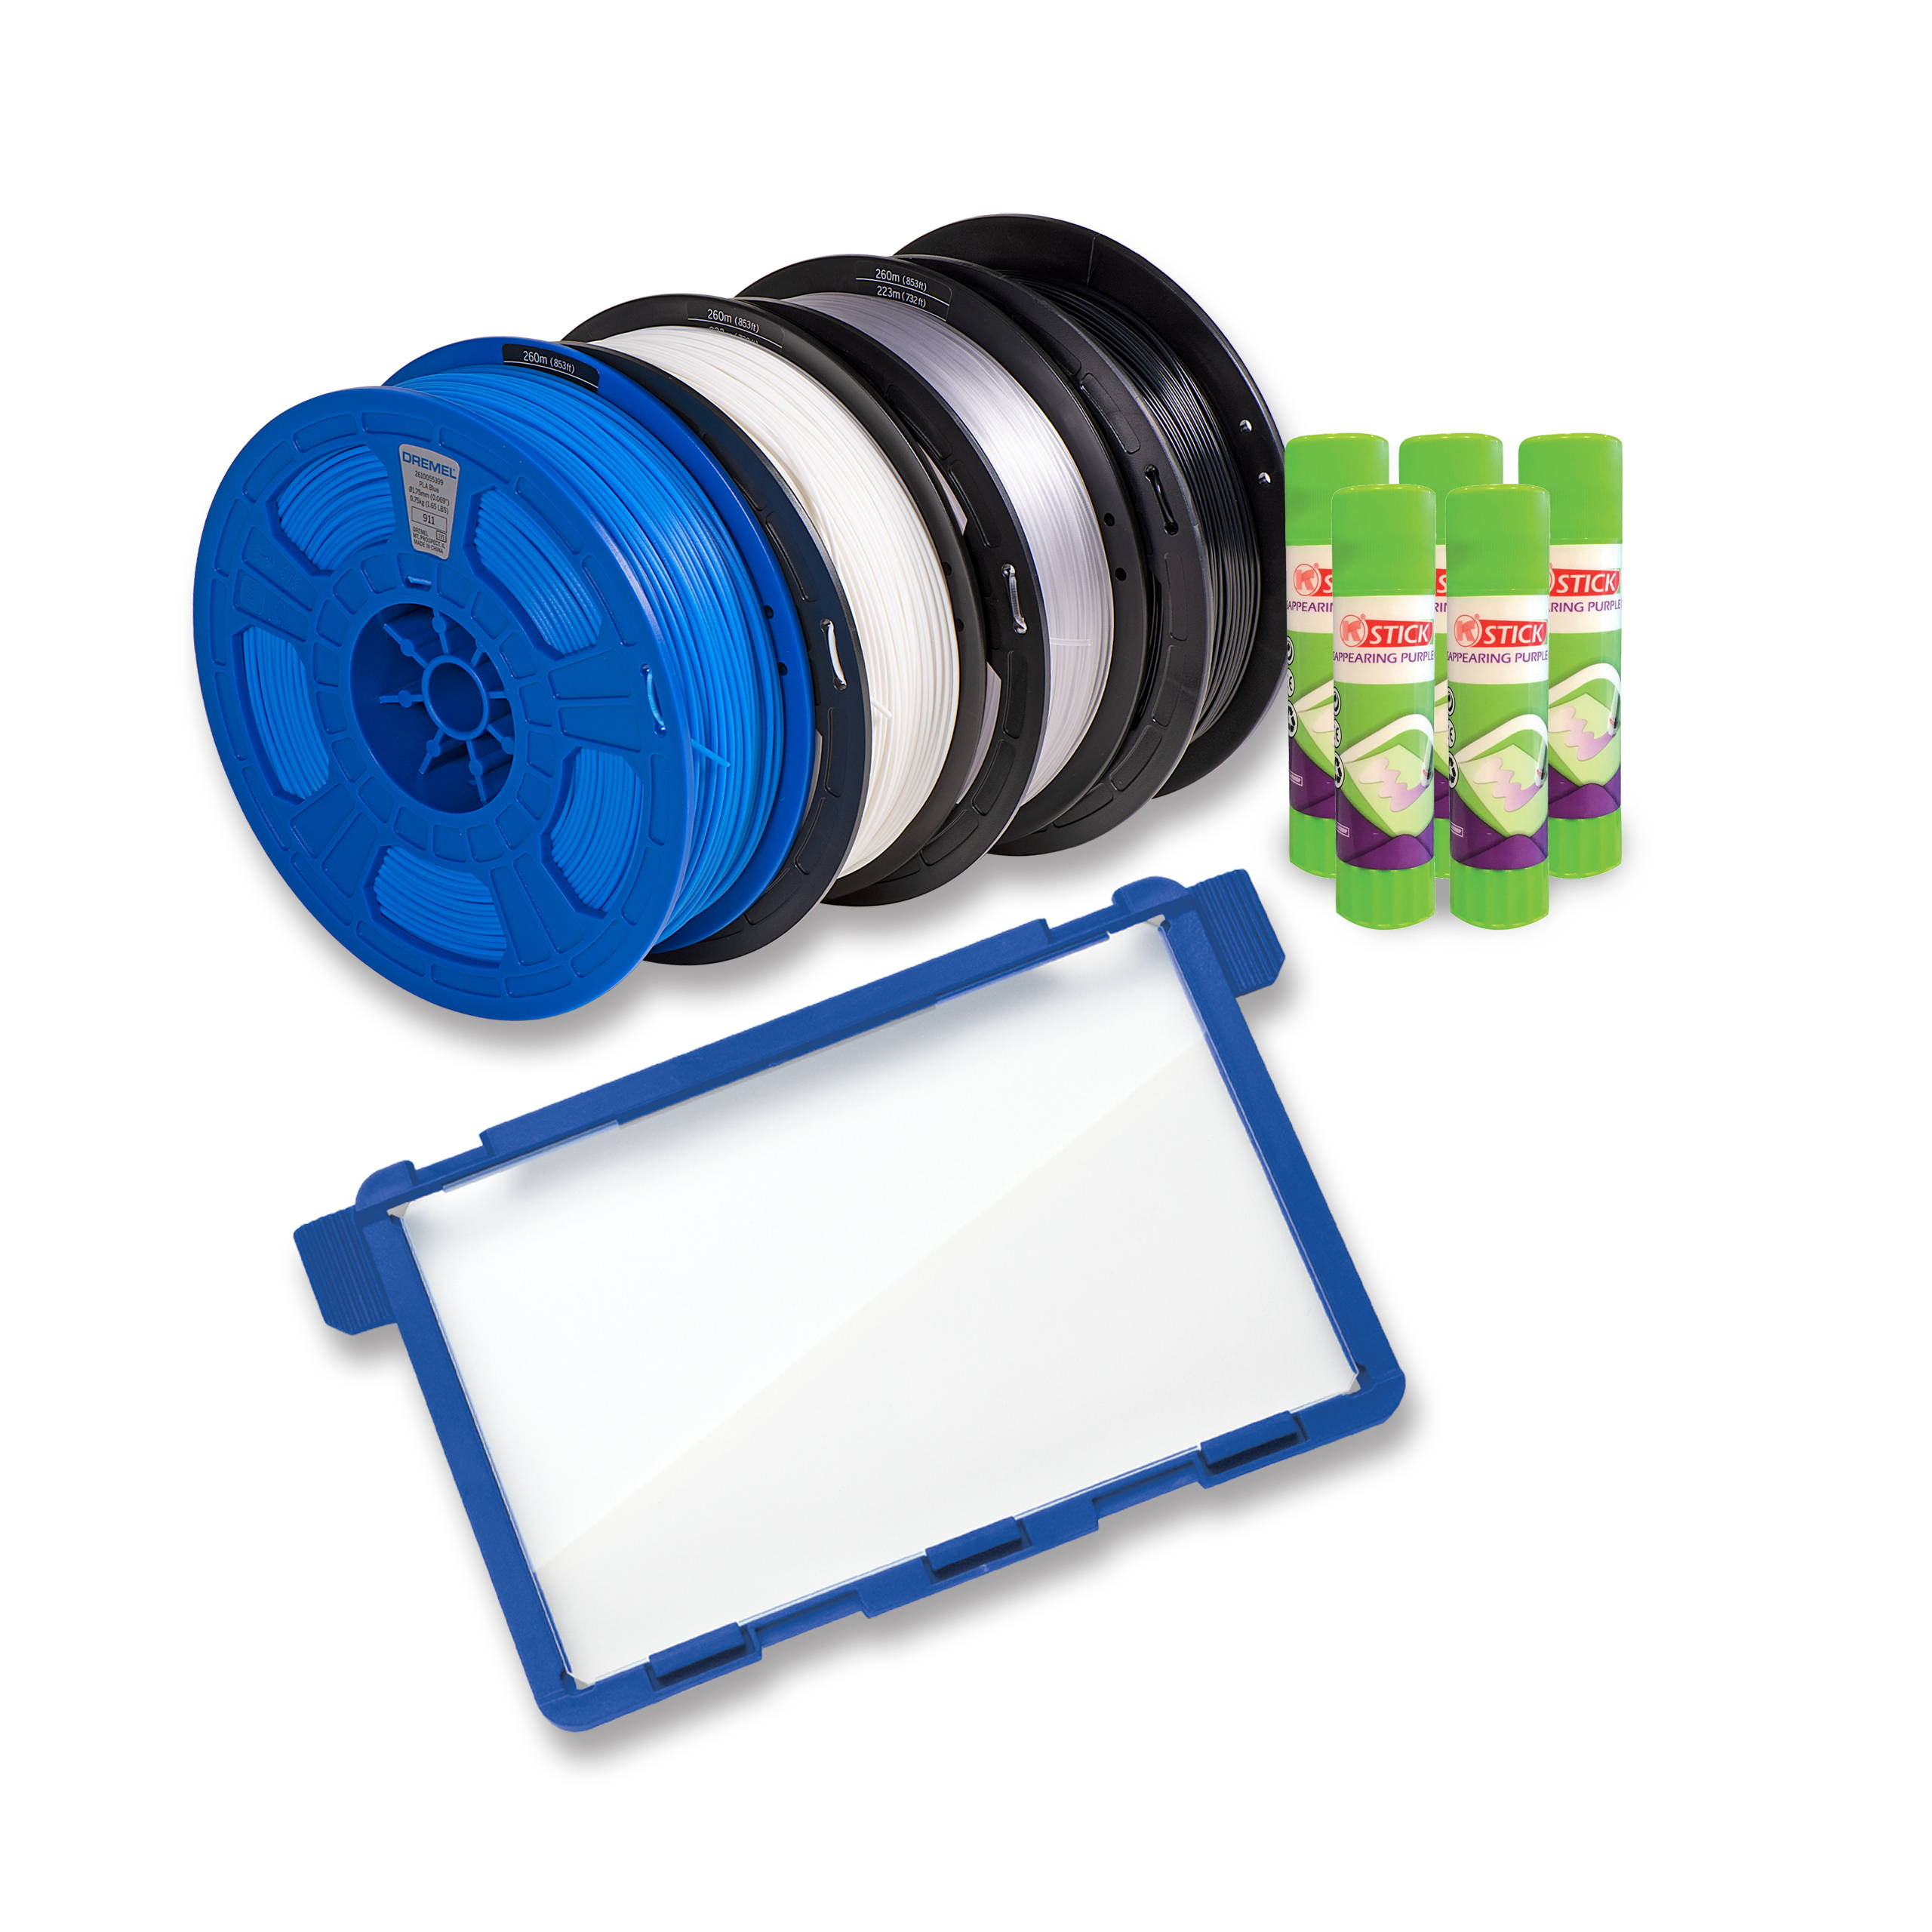 Image of addition items included in 3D45-EDU bundle, 4 spools of filament, 5 glue sticks, 1 extra build plate